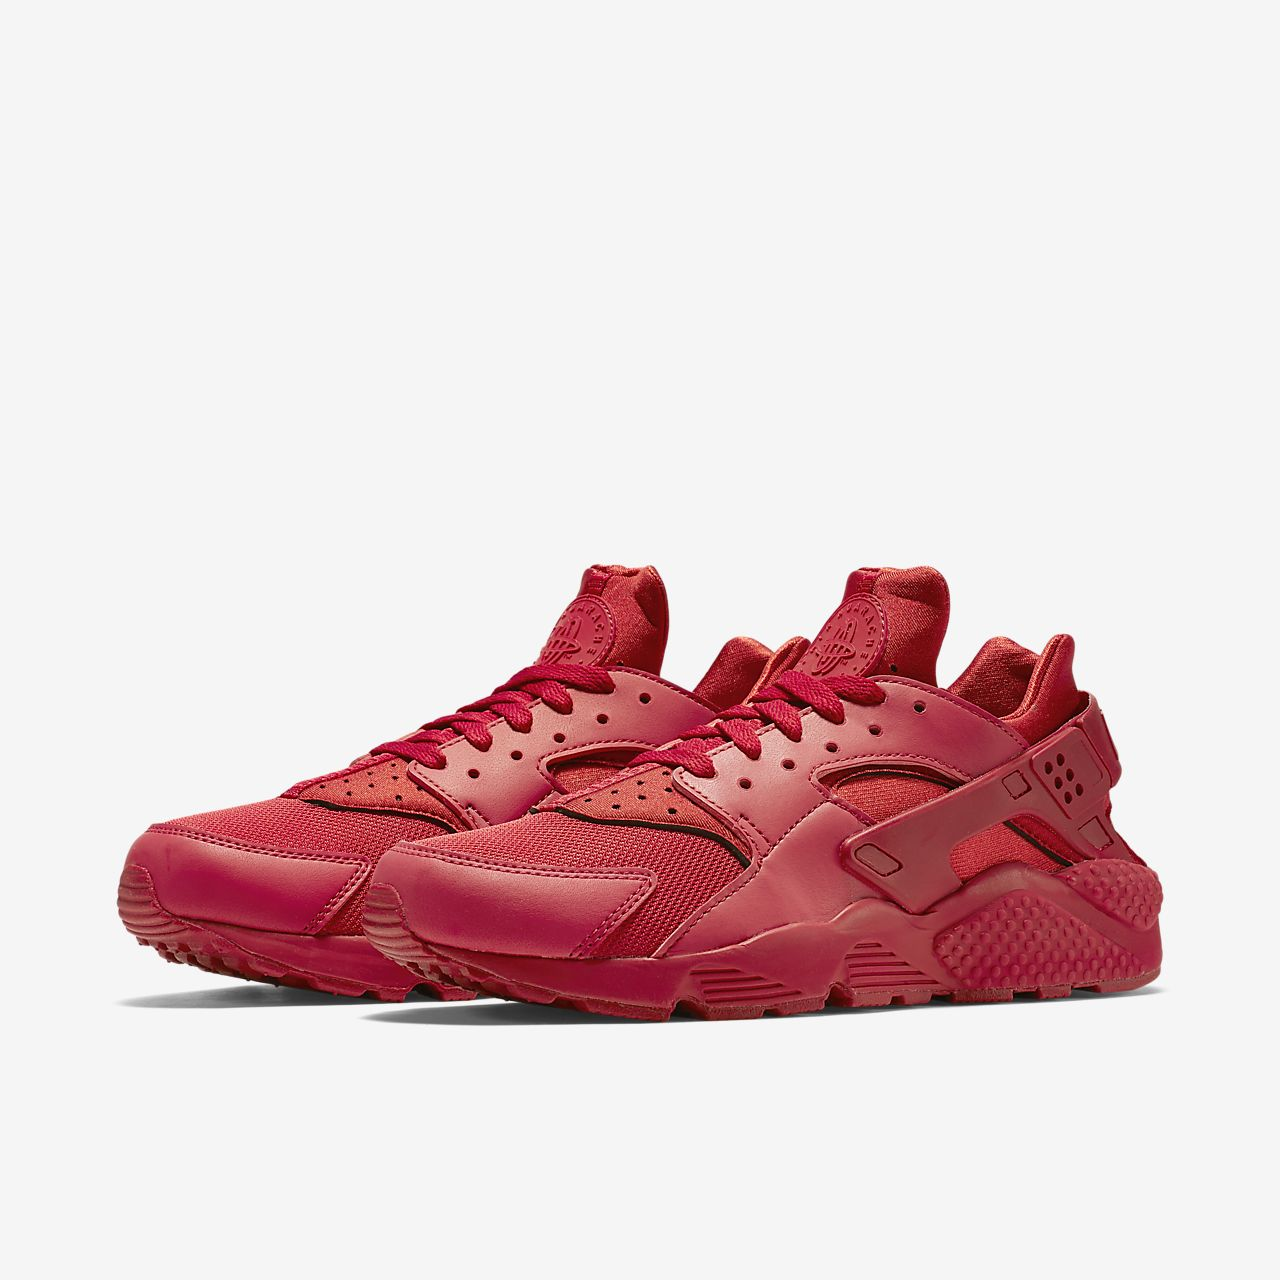 new product c8585 03735 ... Nike Air Huarache Men s Shoe